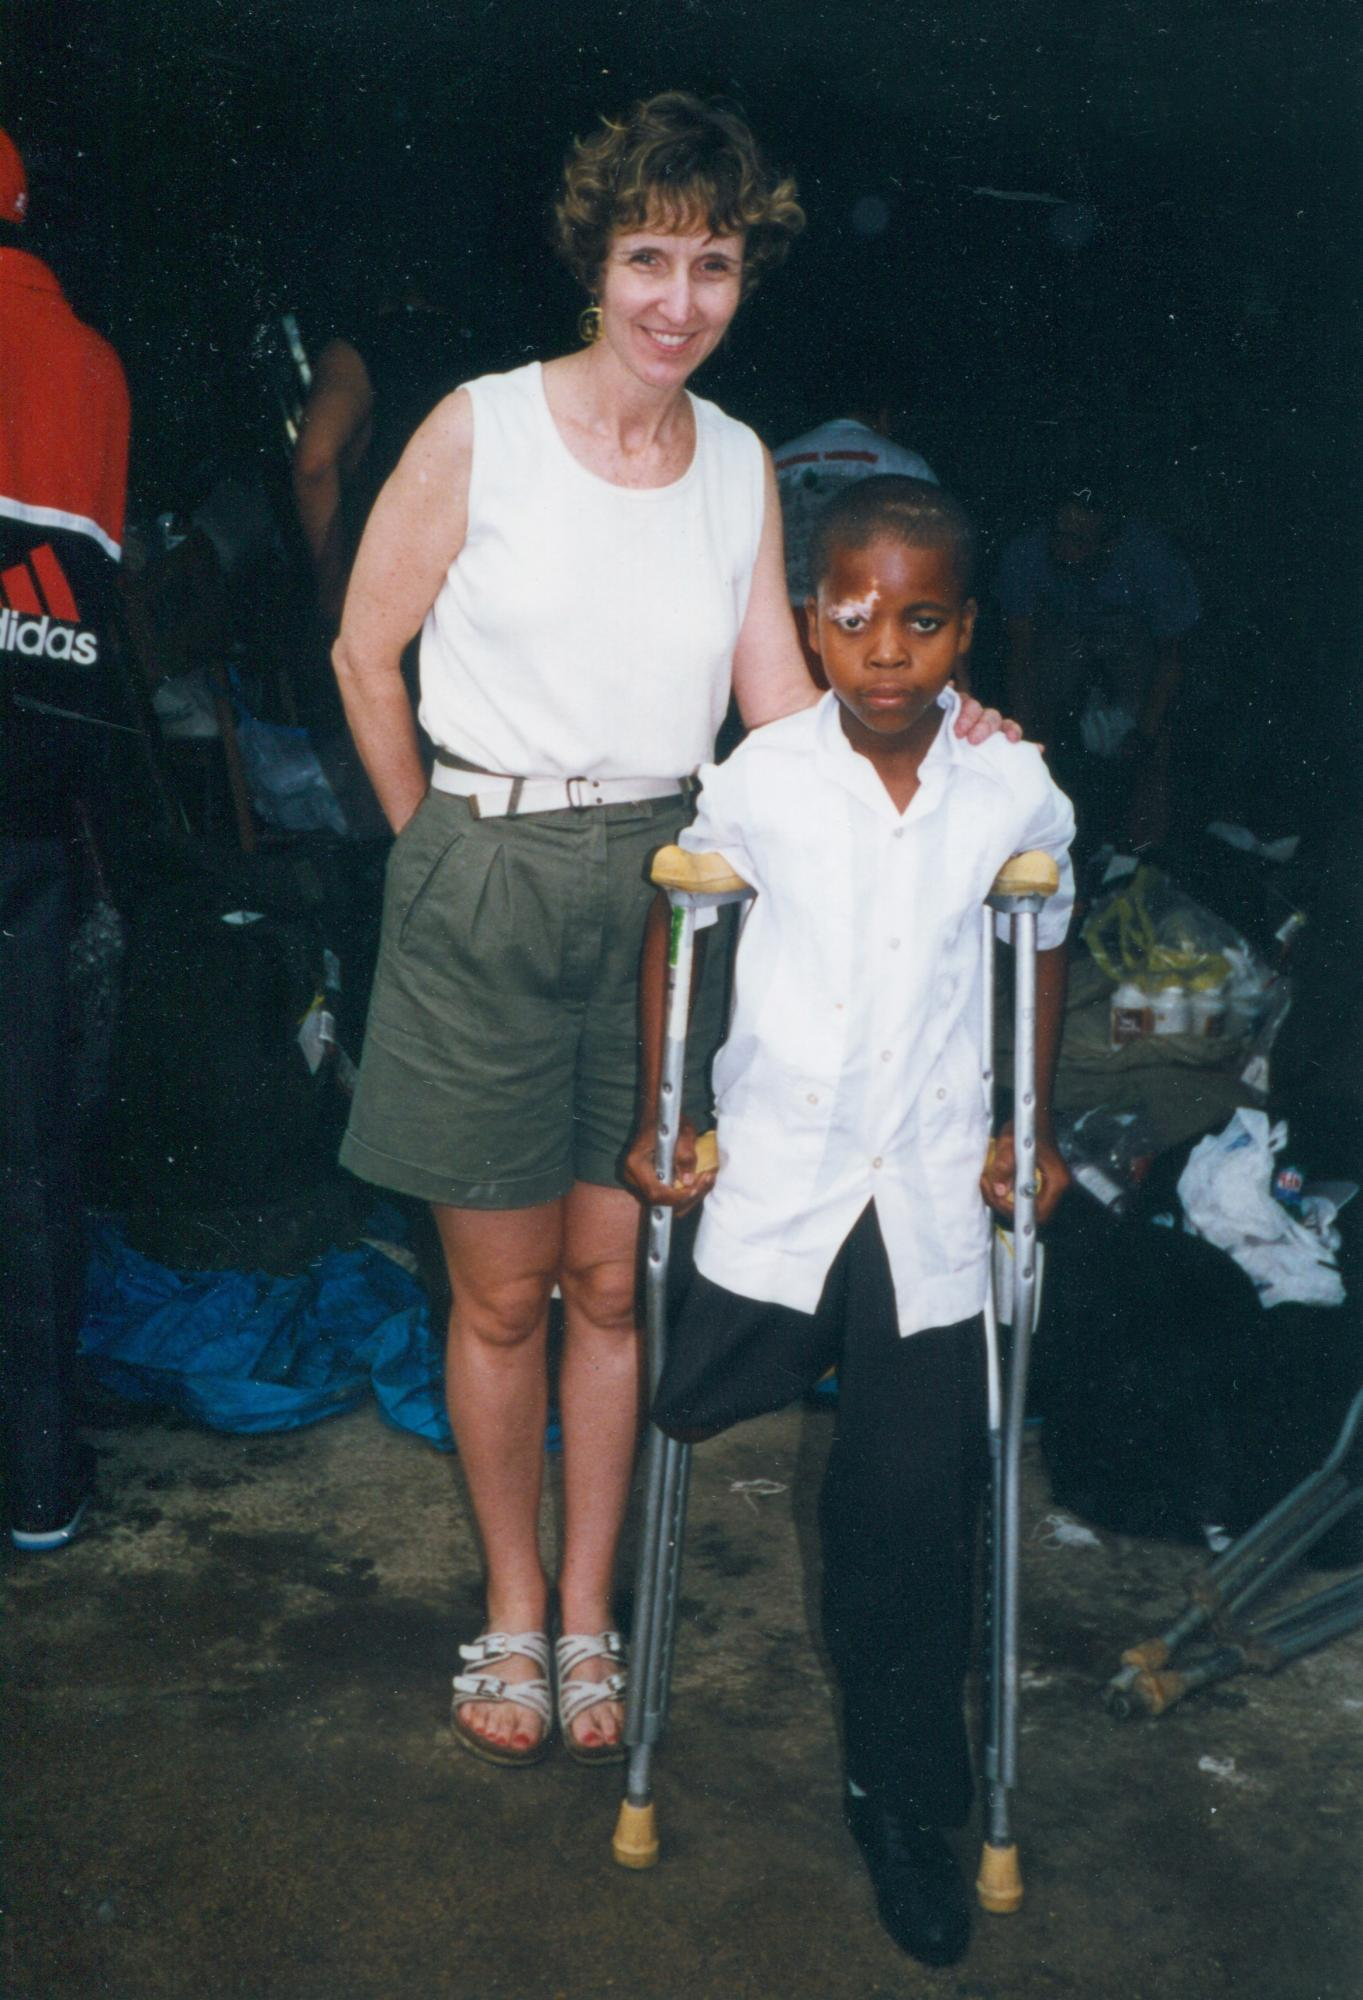 1999_Dr_Murphy_with_young_amputee_on_crutches_p_Dr_MM_image33.jpg